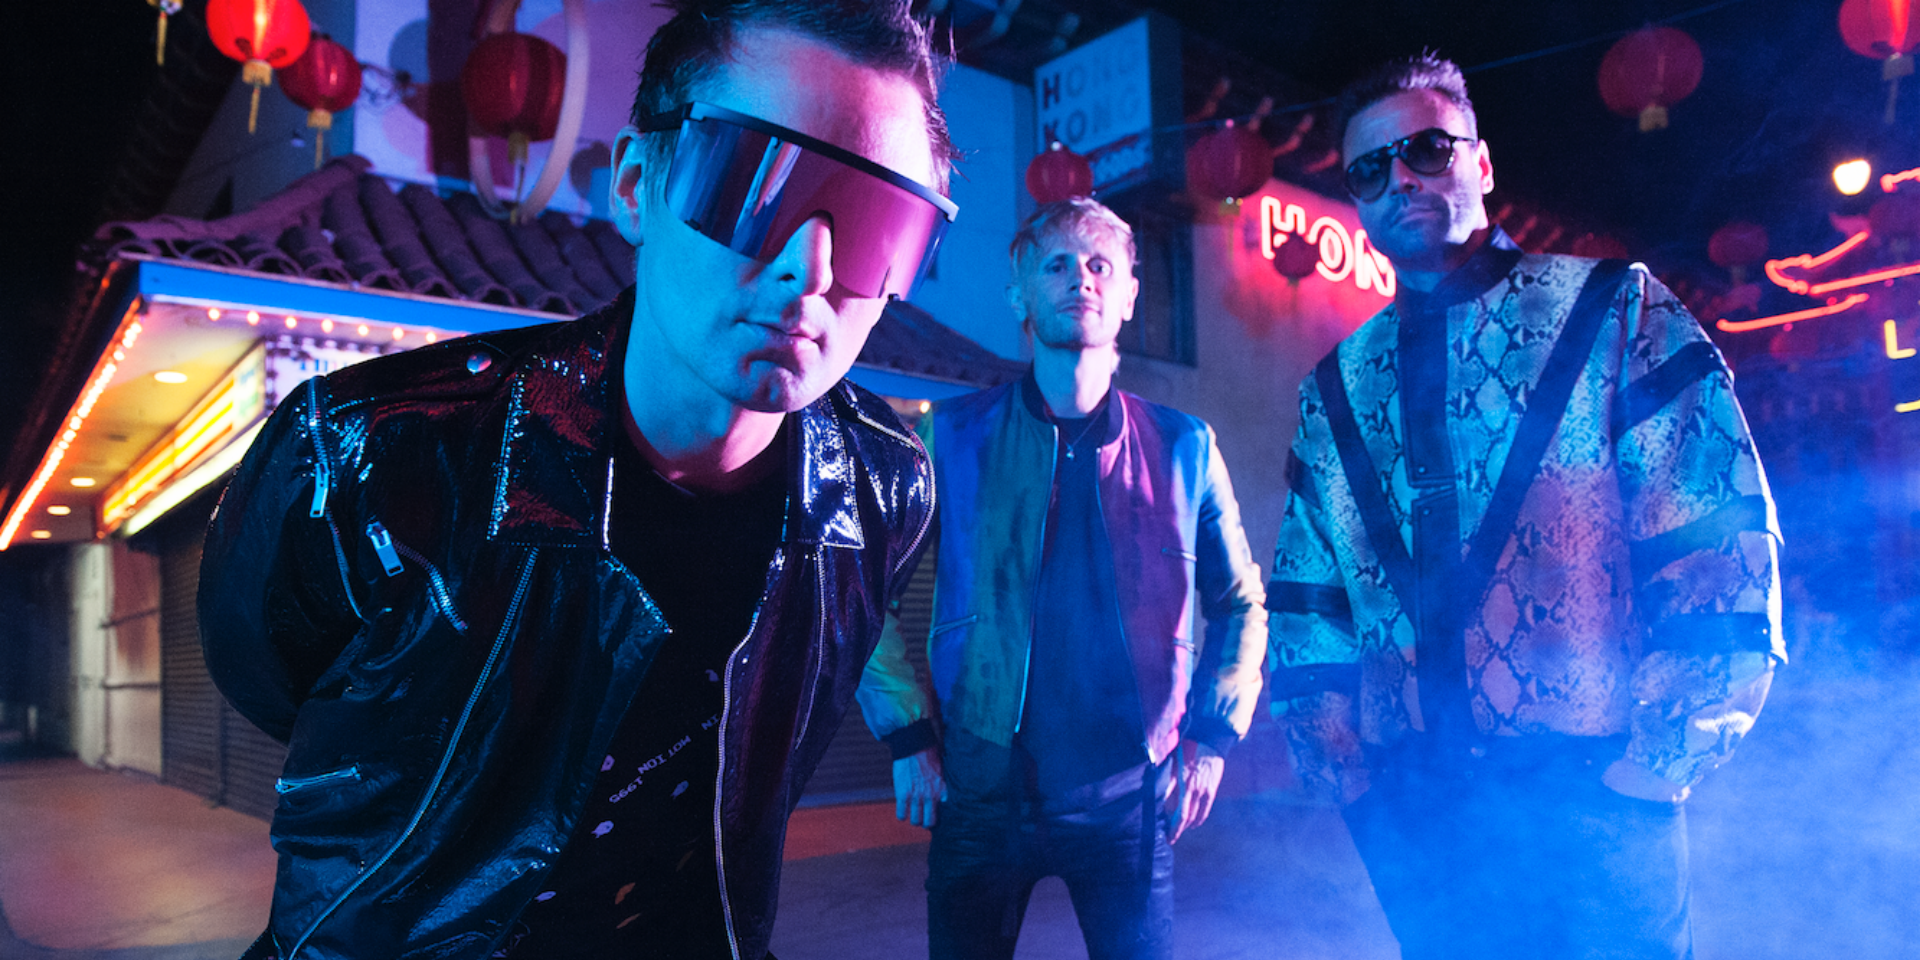 MUSE to perform in Singapore for F1 2019